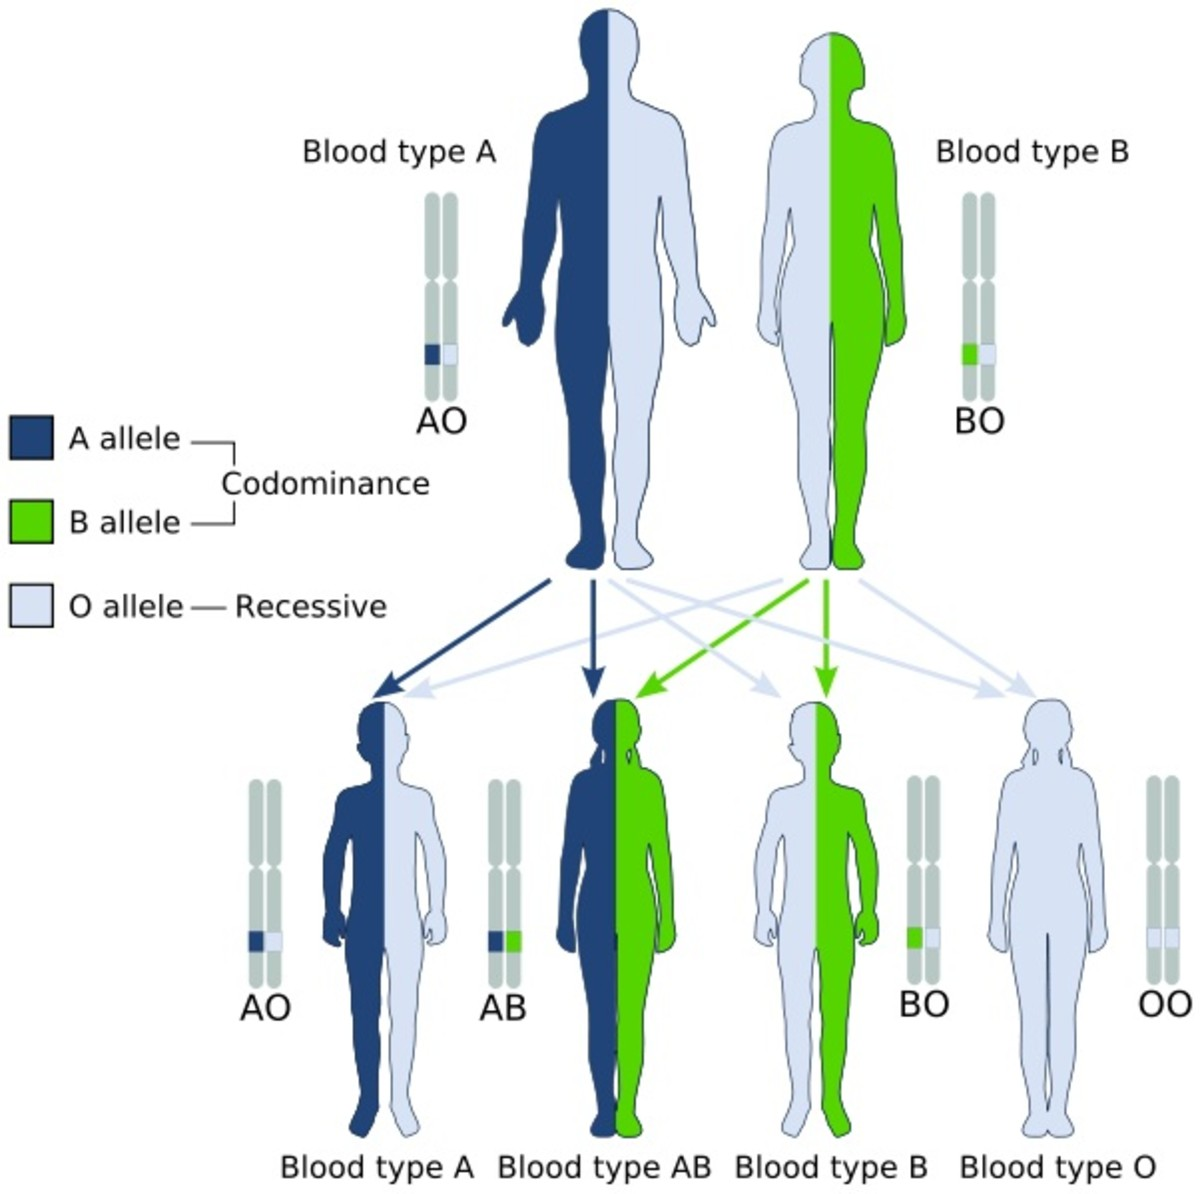 ABO Blood Type Inheritance